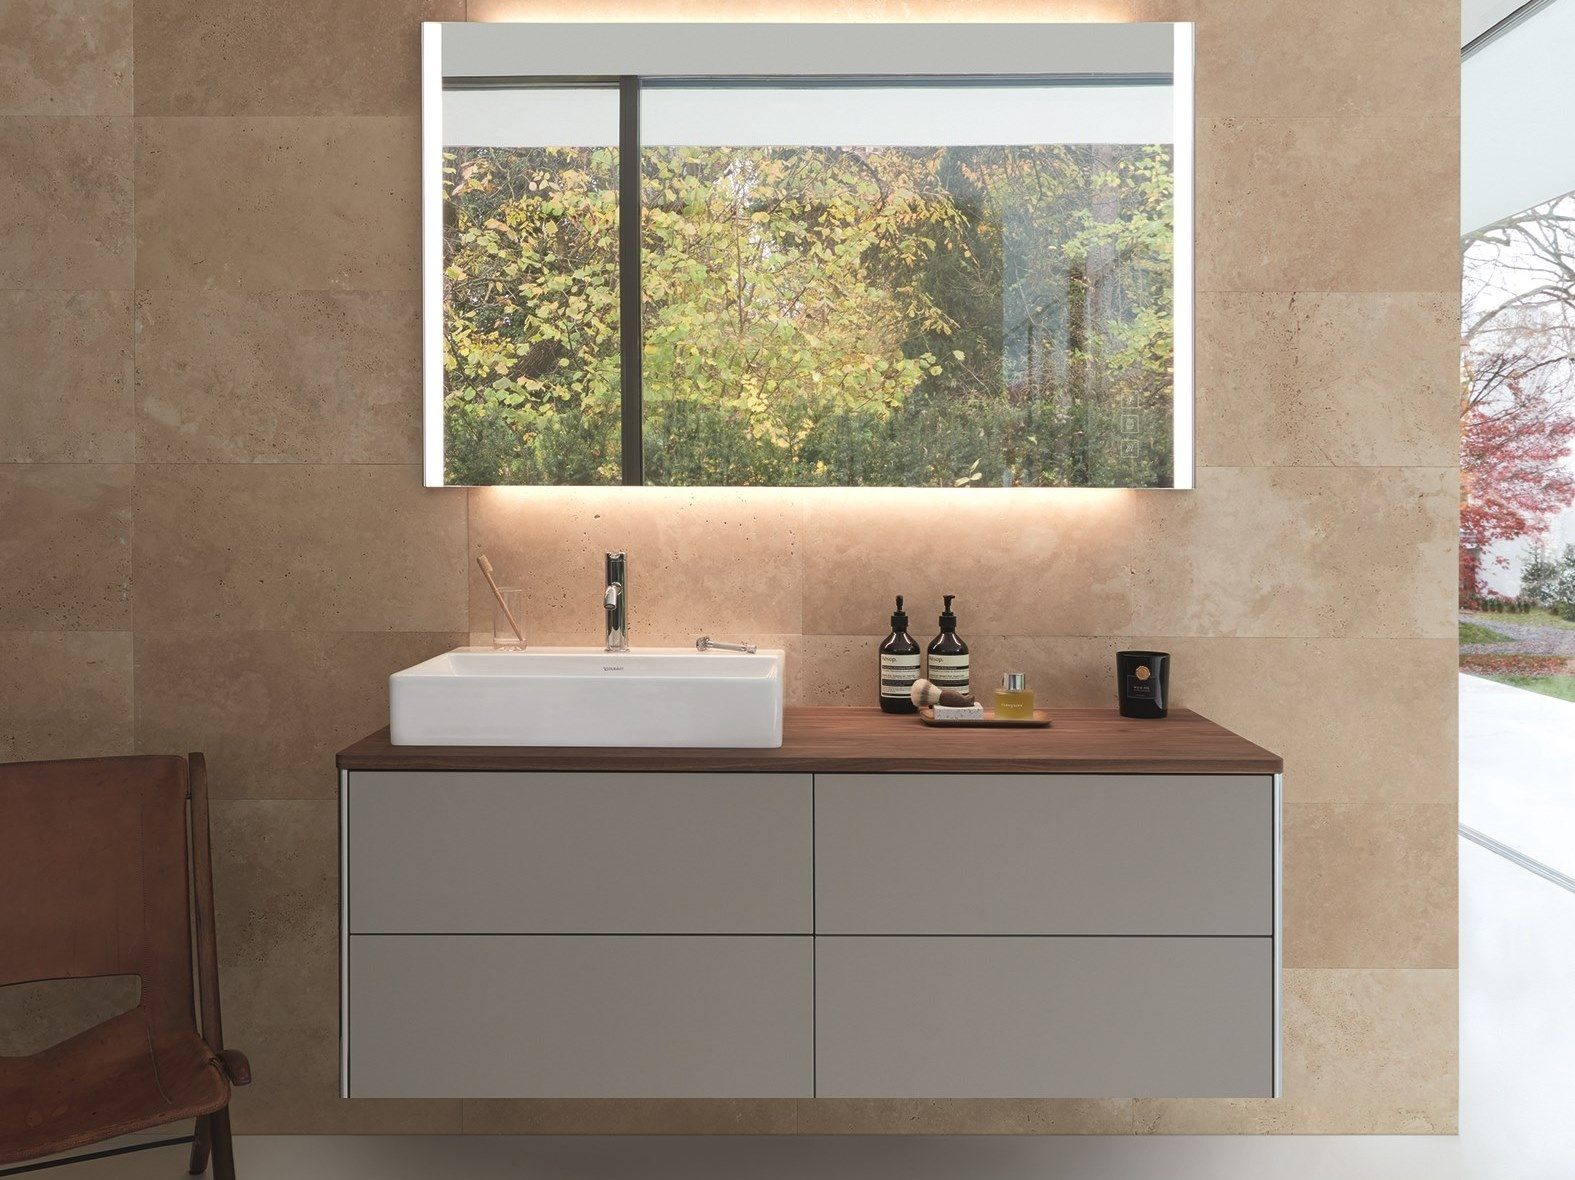 Lacquered Single Wall Mounted Vanity Unit Xsquare Wall Mounted Vanity Unit By Duravit Wall Mounted Vanity Duravit Vanity Units